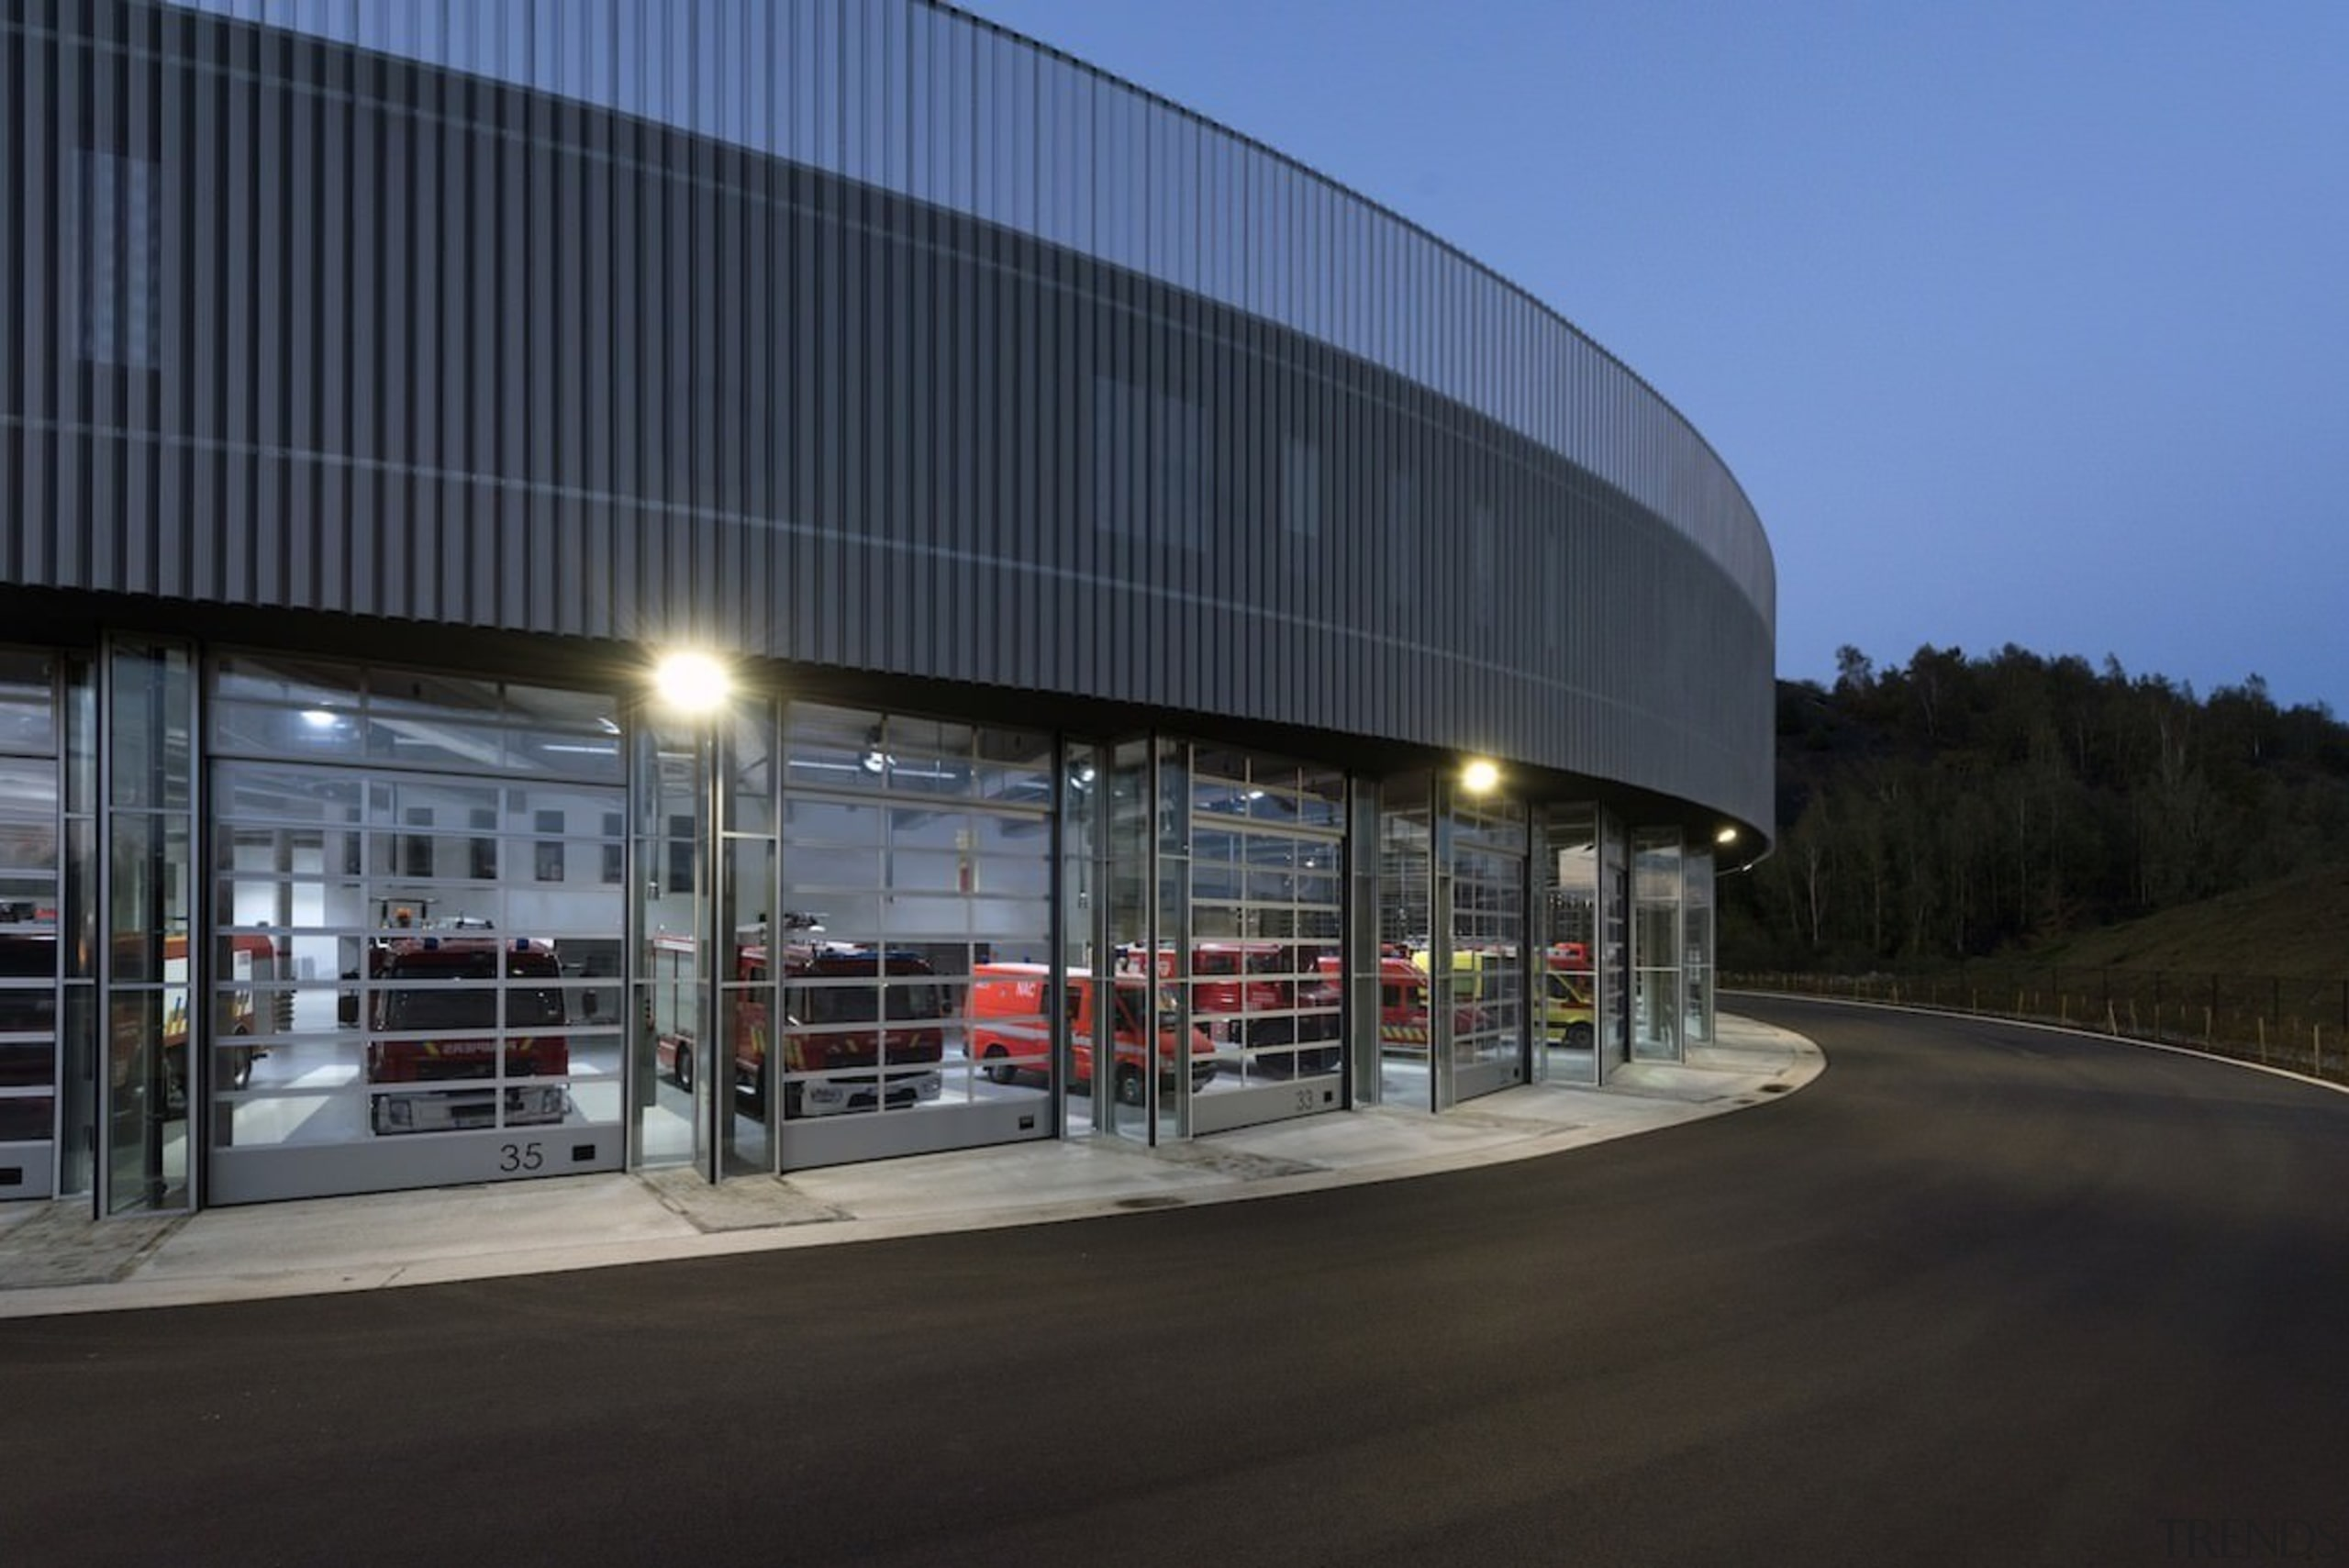 569 firestation - 569 firestation - building | building, corporate headquarters, mixed use, structure, black